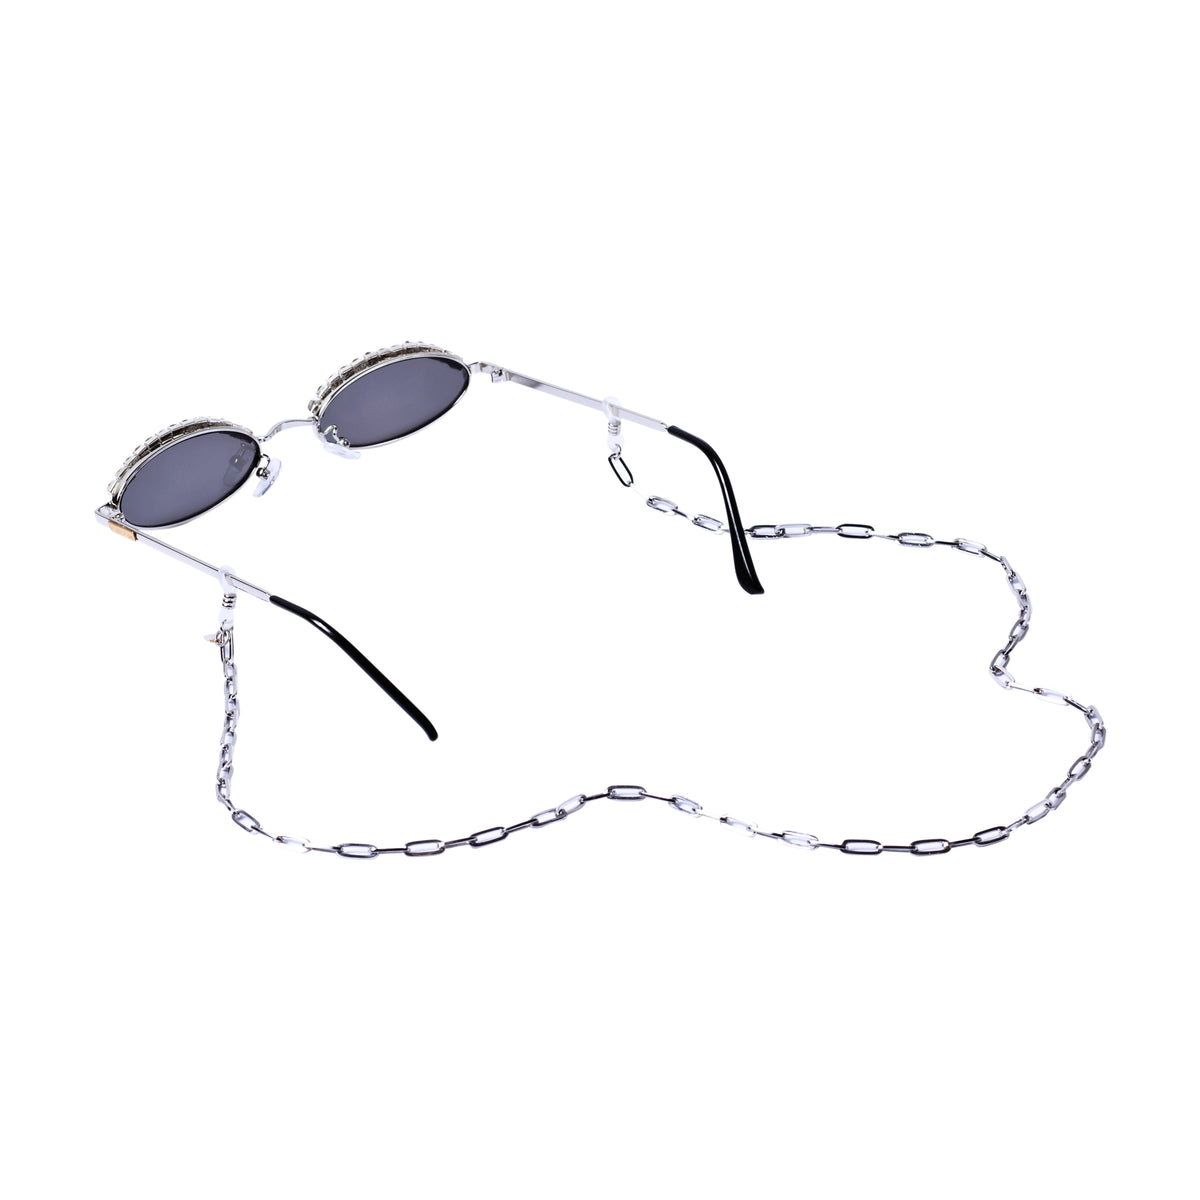 CLASSIC SUNNIES CHAIN IN SILVER